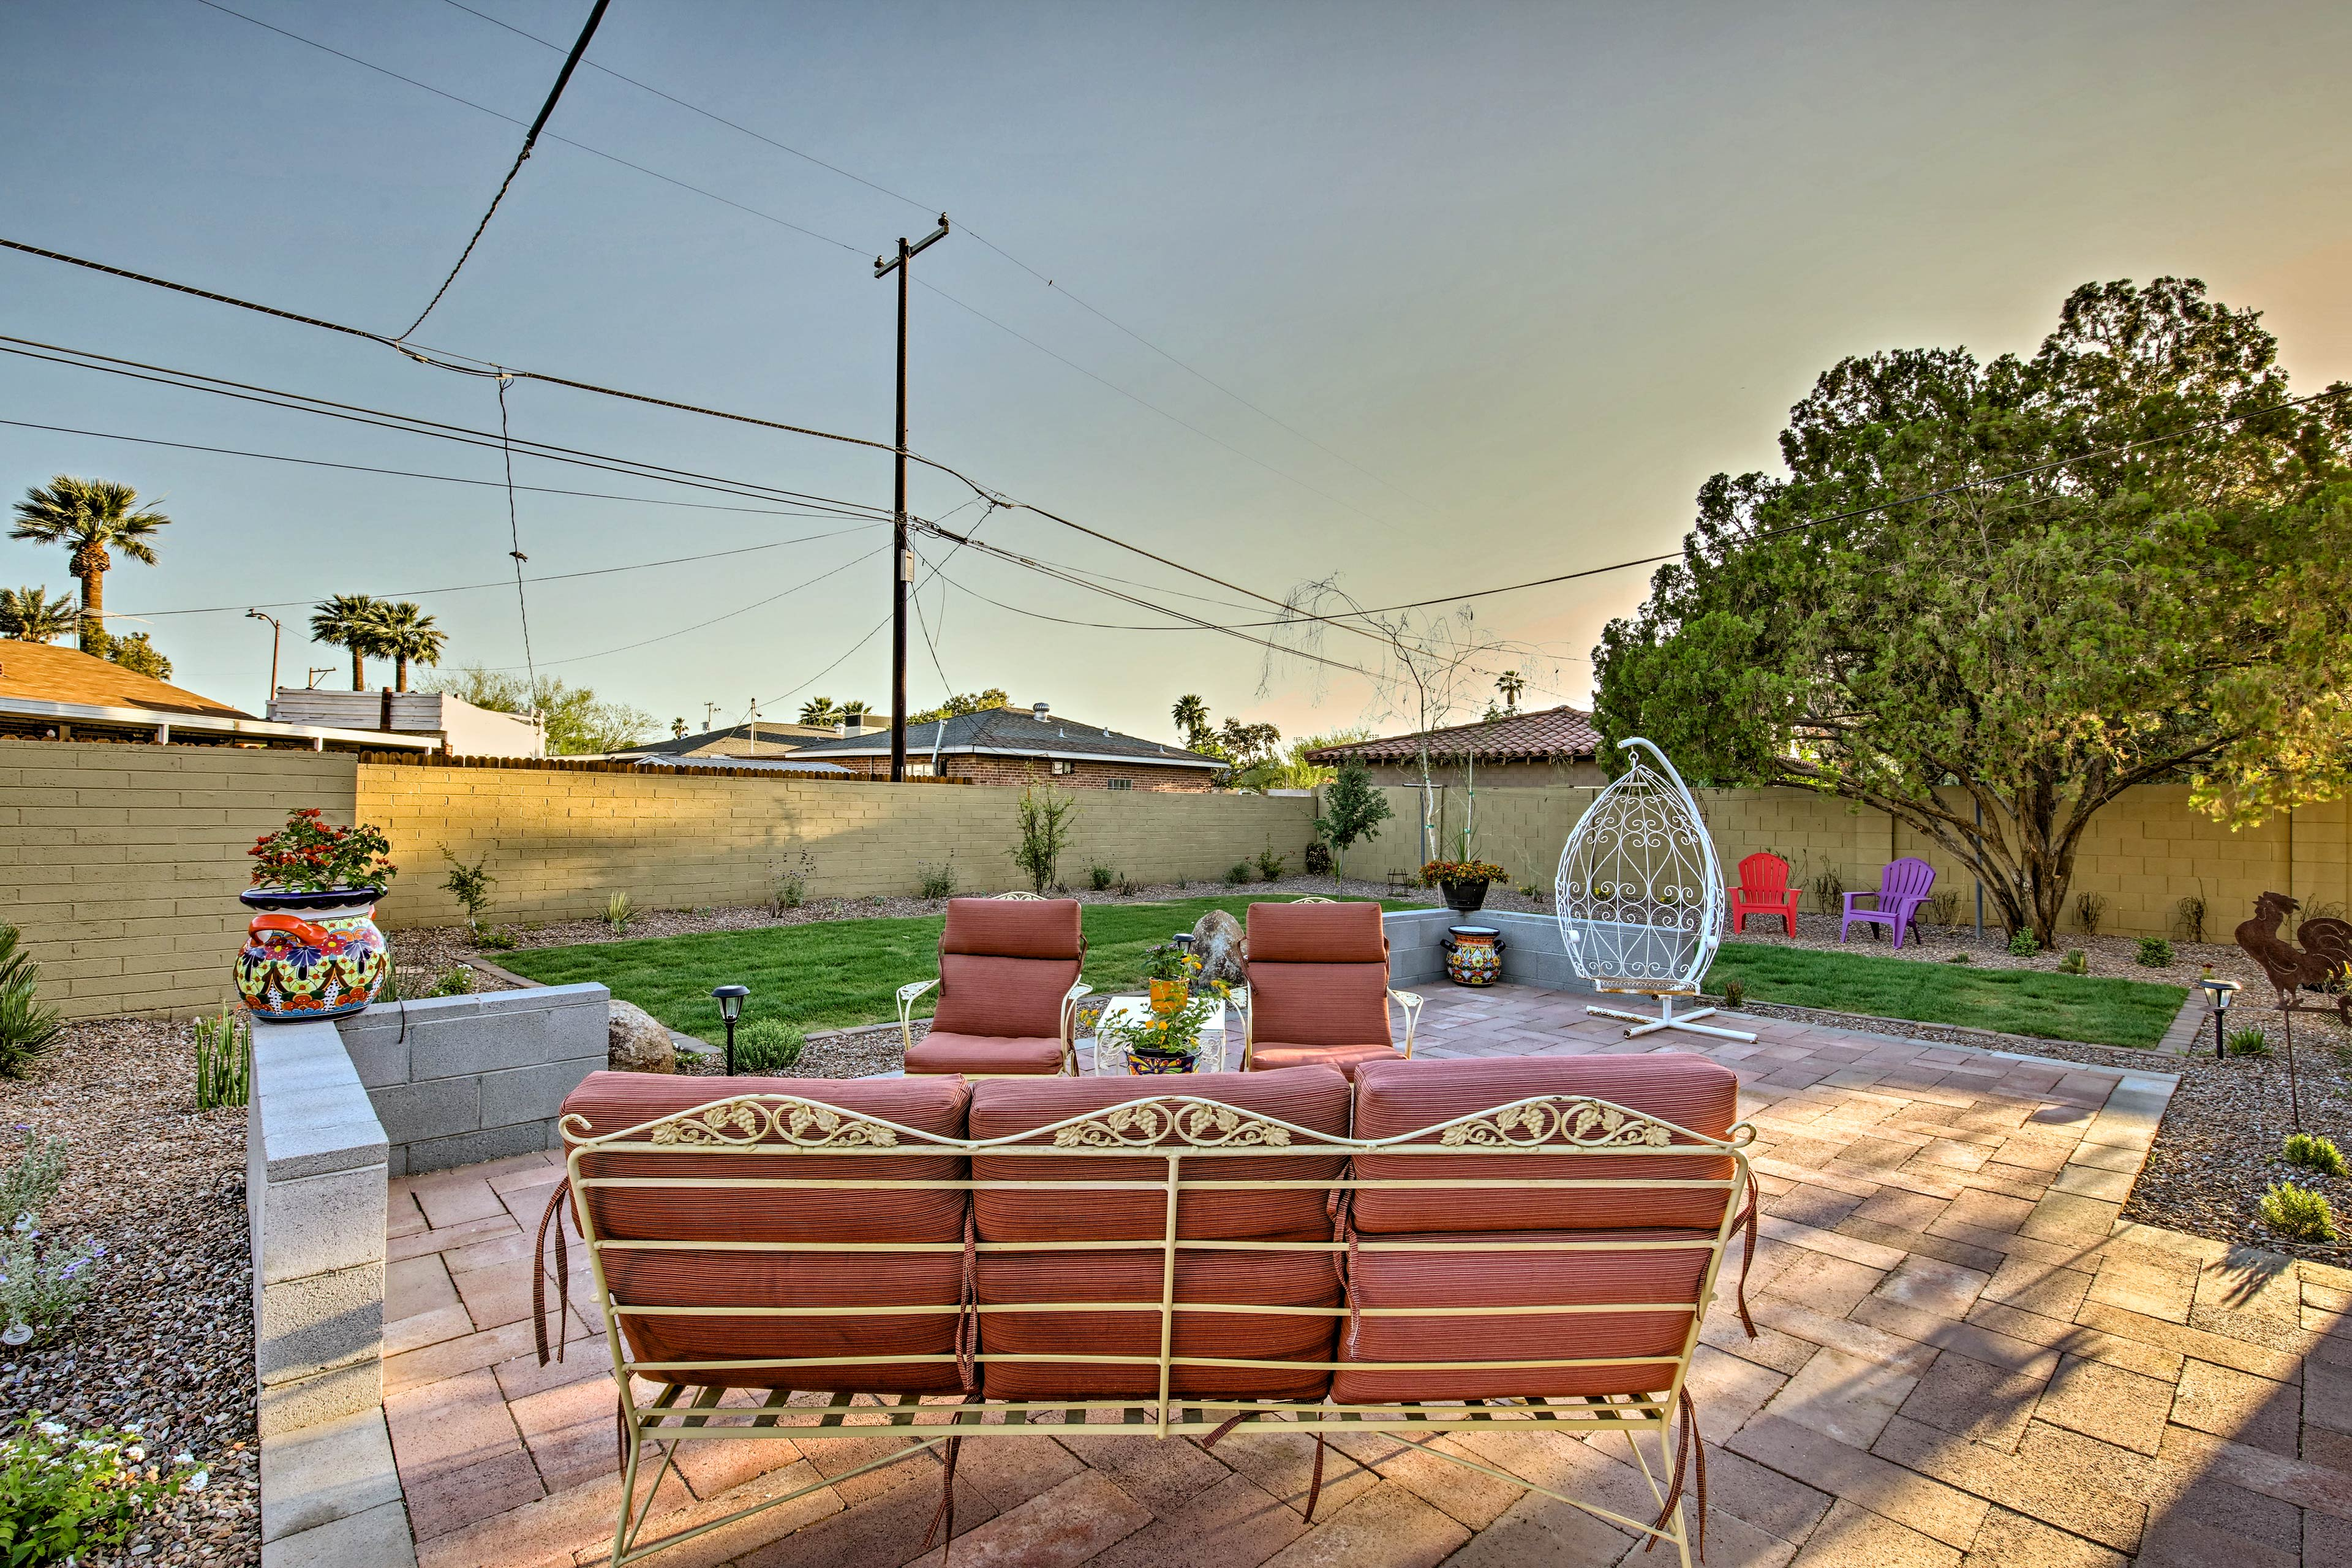 Lounge around on the outdoor furniture with loved ones.